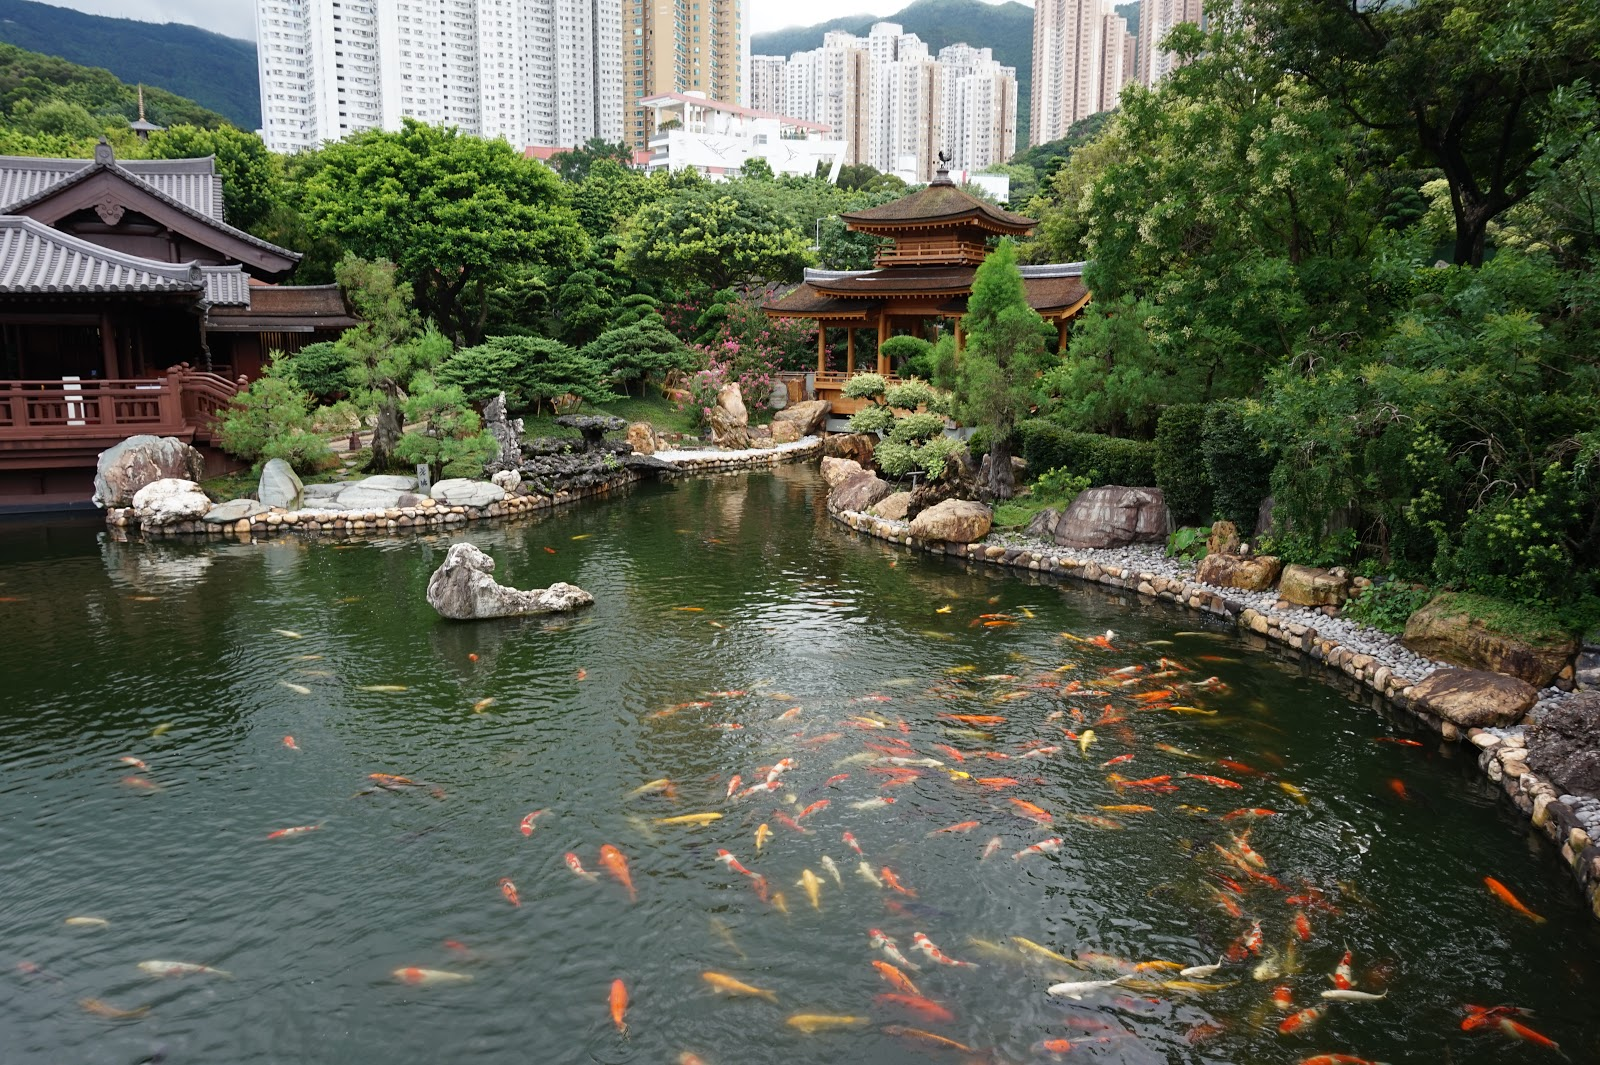 Koi in Hong Kong, Hong Kong Travel, Hong Kong Travel destination, Discover Hong Kong